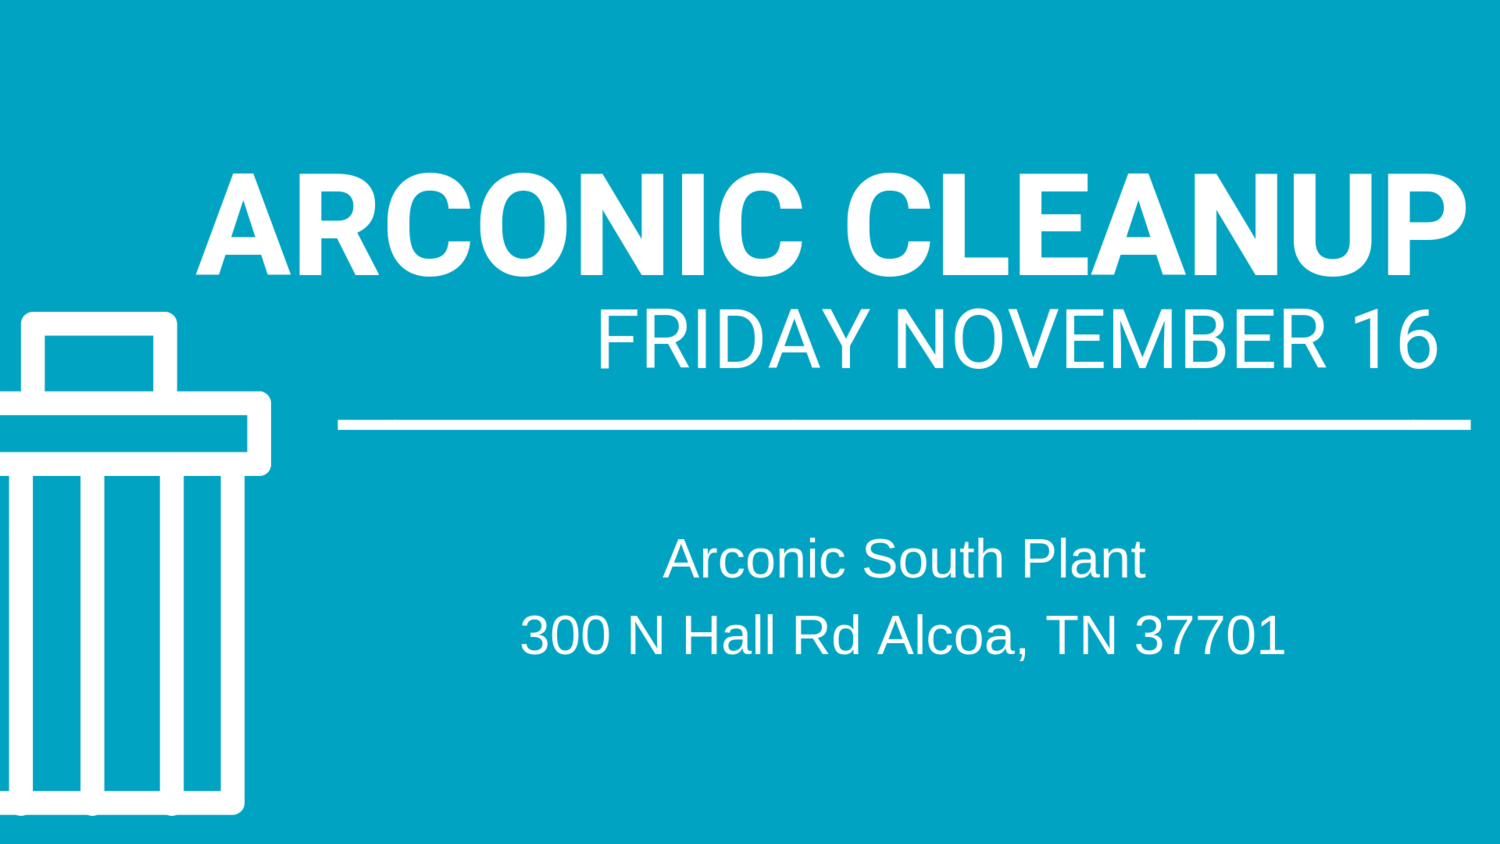 Arconic Cleanup — Keep Blount Beautiful